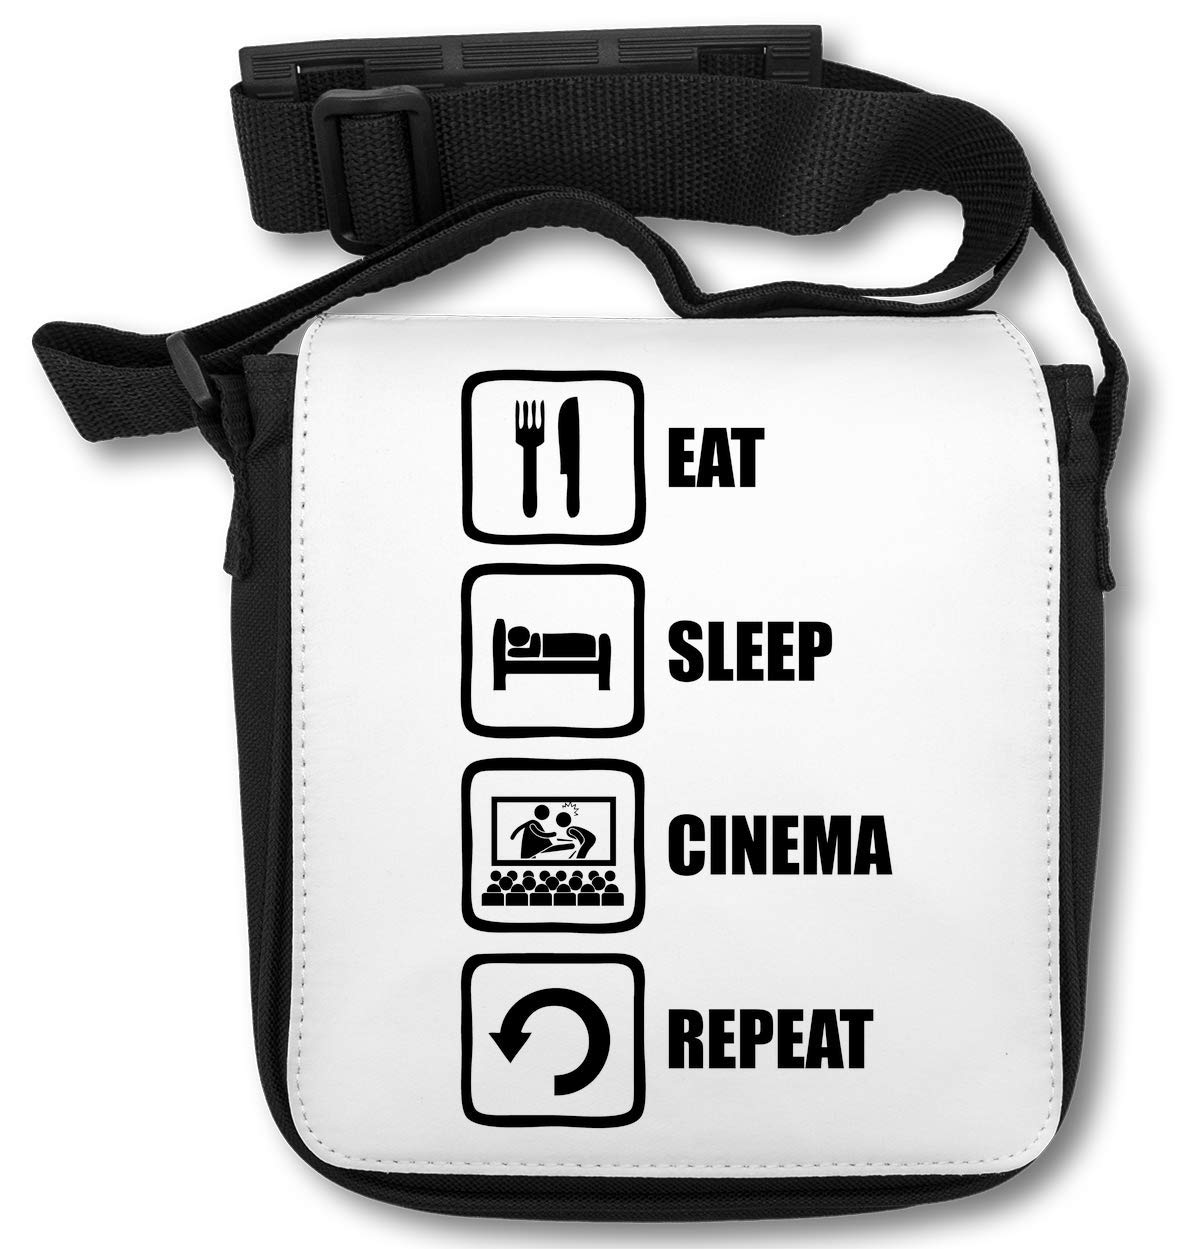 Eat Sleep Cinema Repeat Funny Black Graphic Sac d\'épaule